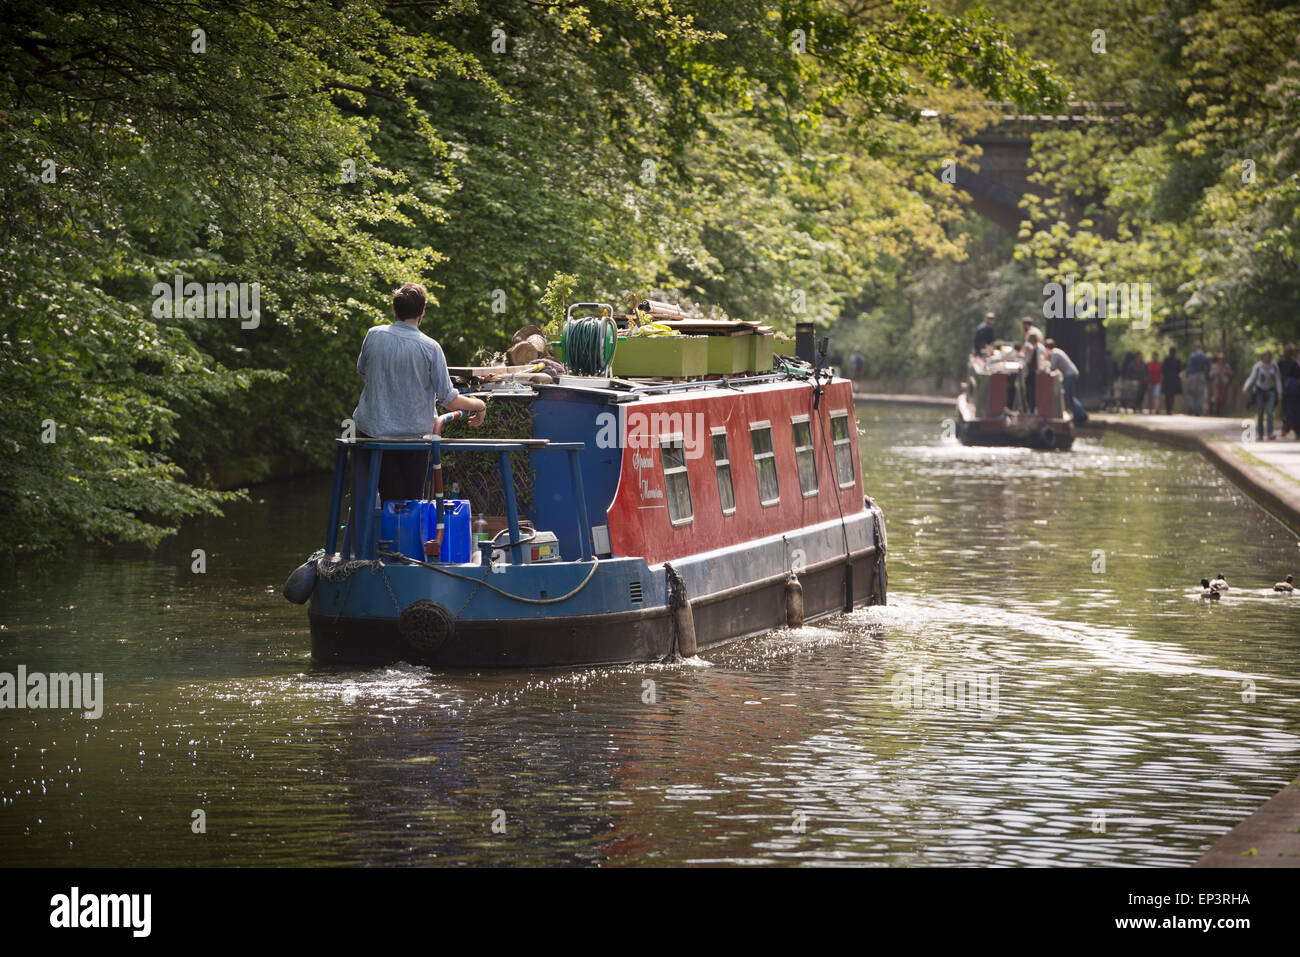 Narrow boats cruising on the Regent's Canal in London - Stock Image